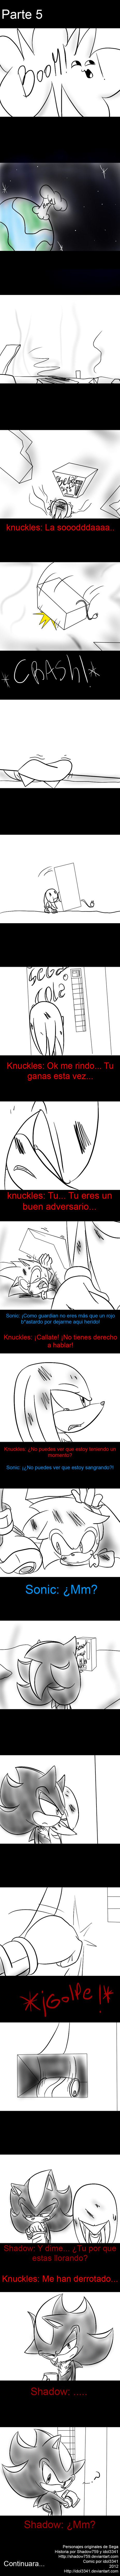 Knuckles consigue una soda parte 5 by idolnya